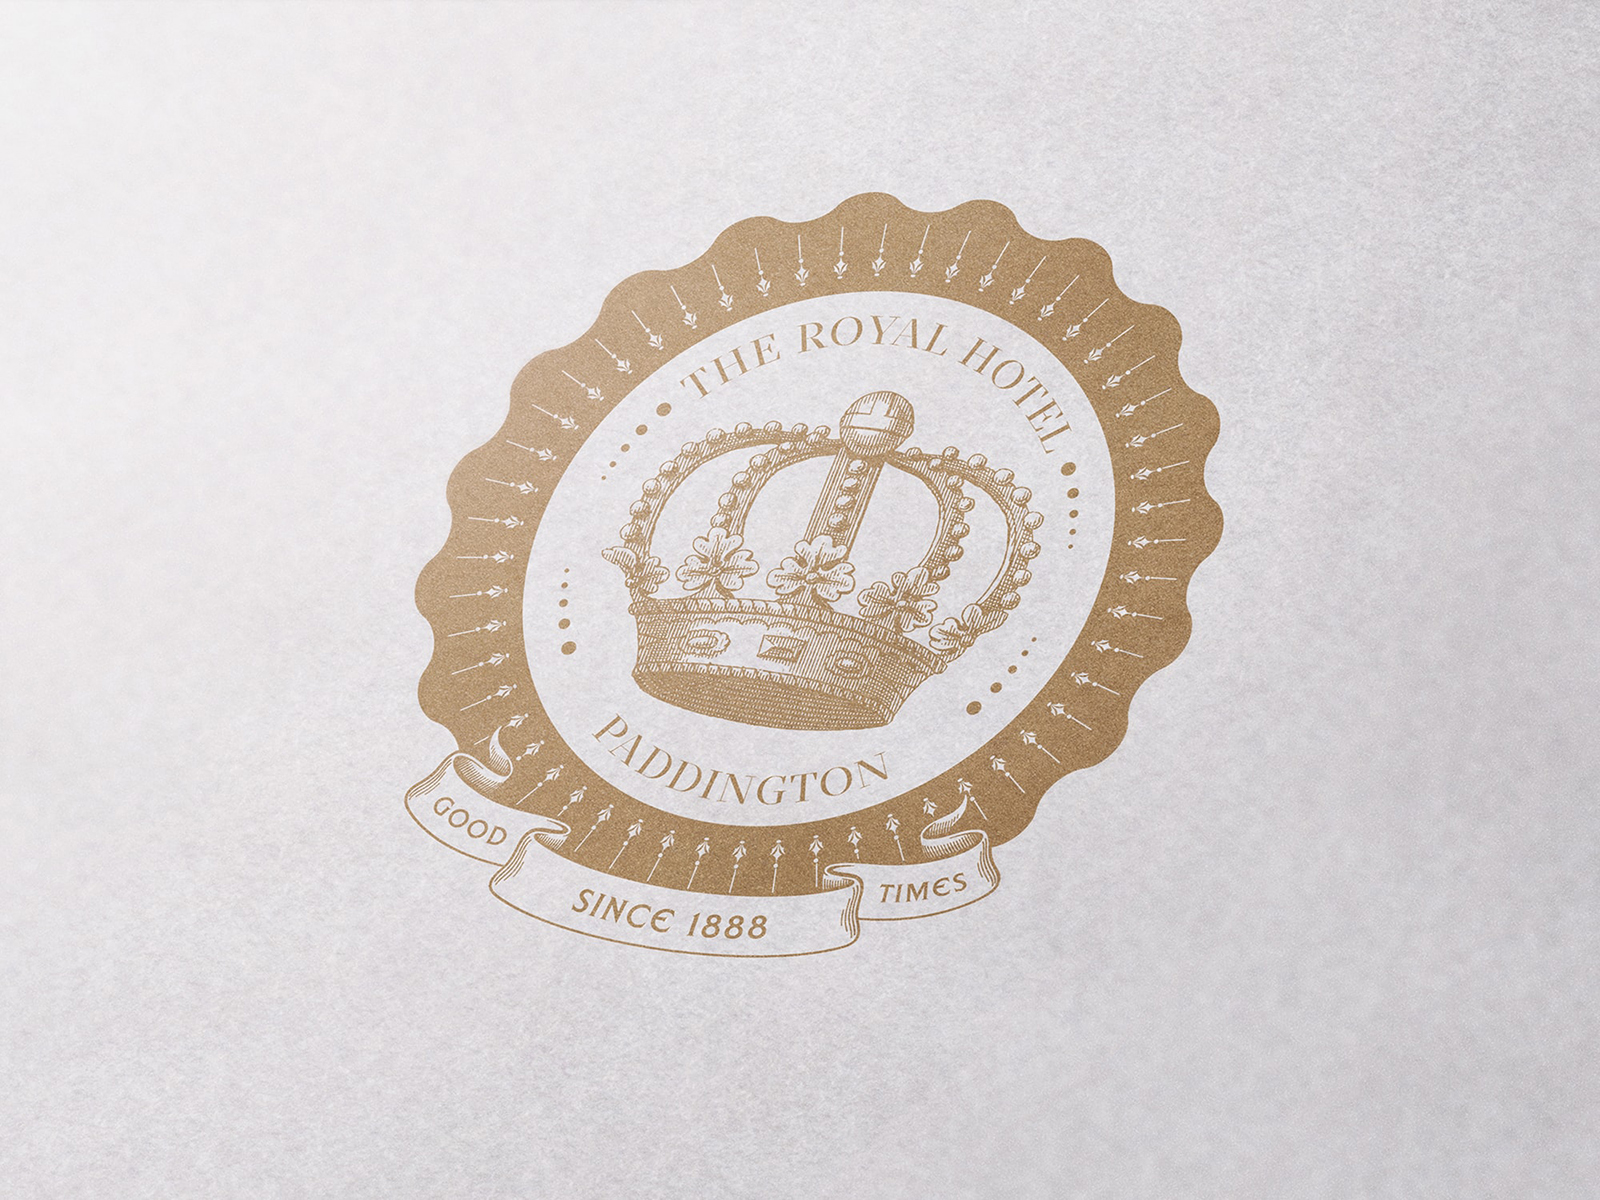 ROYAL-HOTEL-LOGO-min